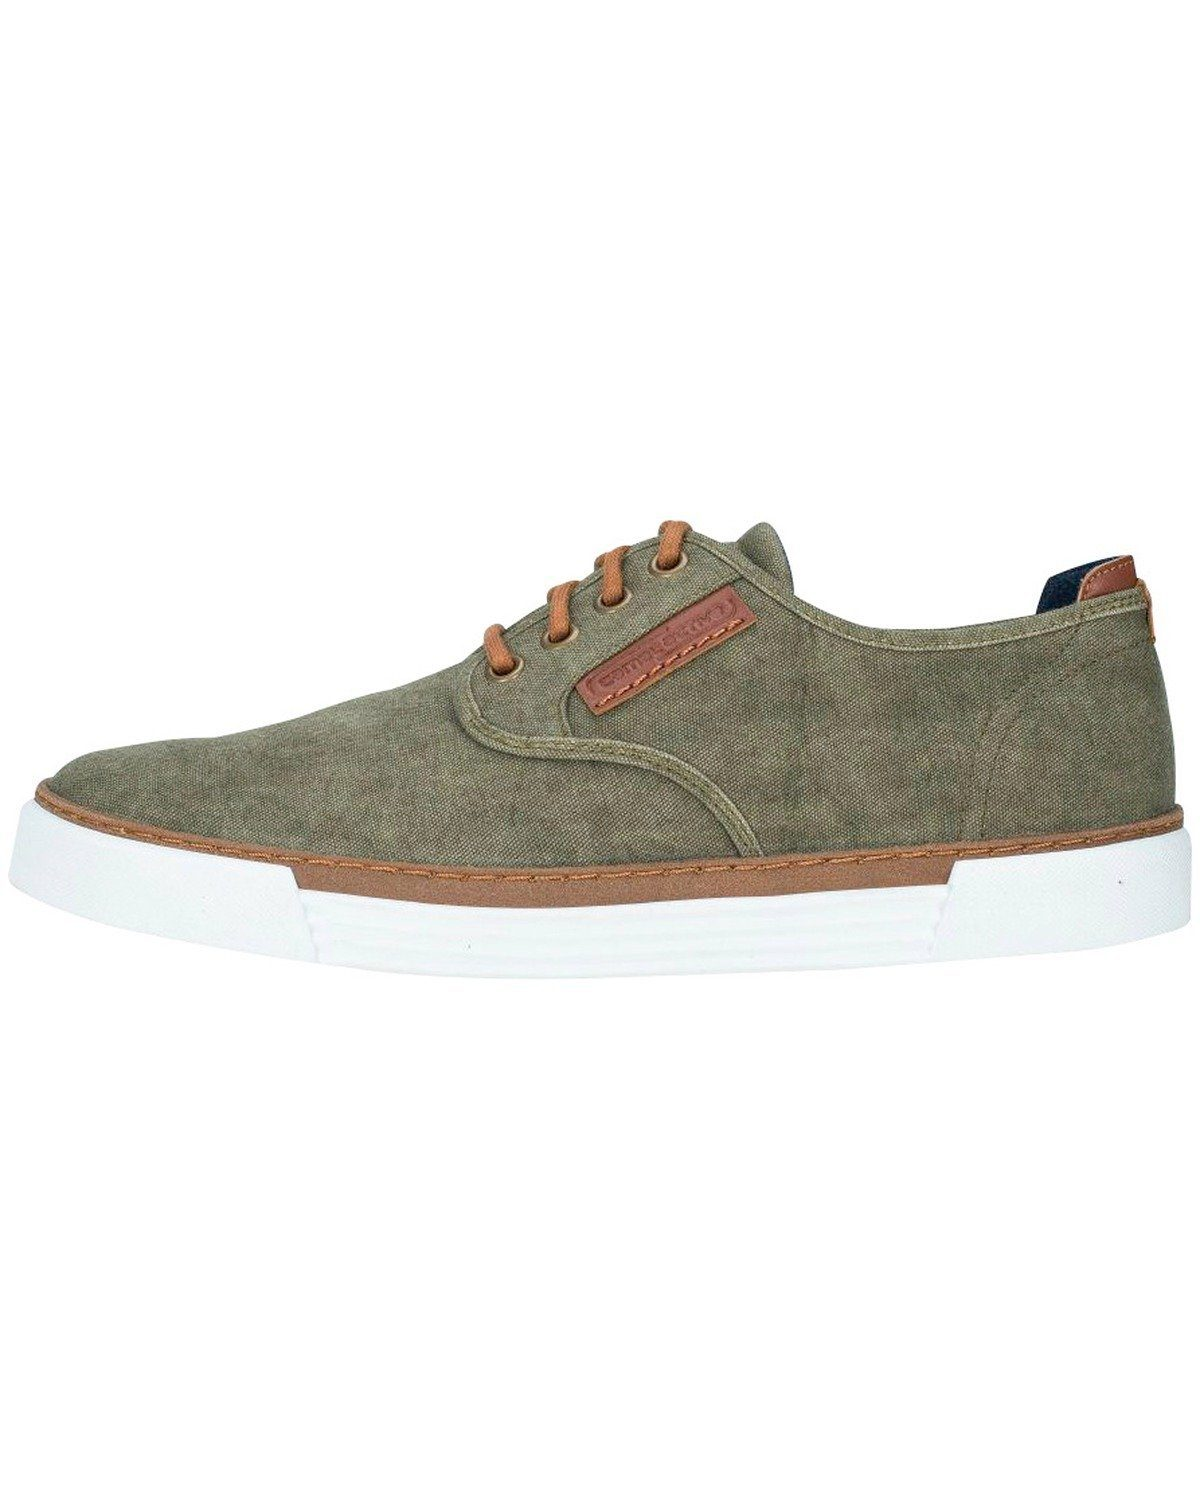 camel active Canvas Sneaker Racket 14, Washed Canvas online kaufen | OTTO